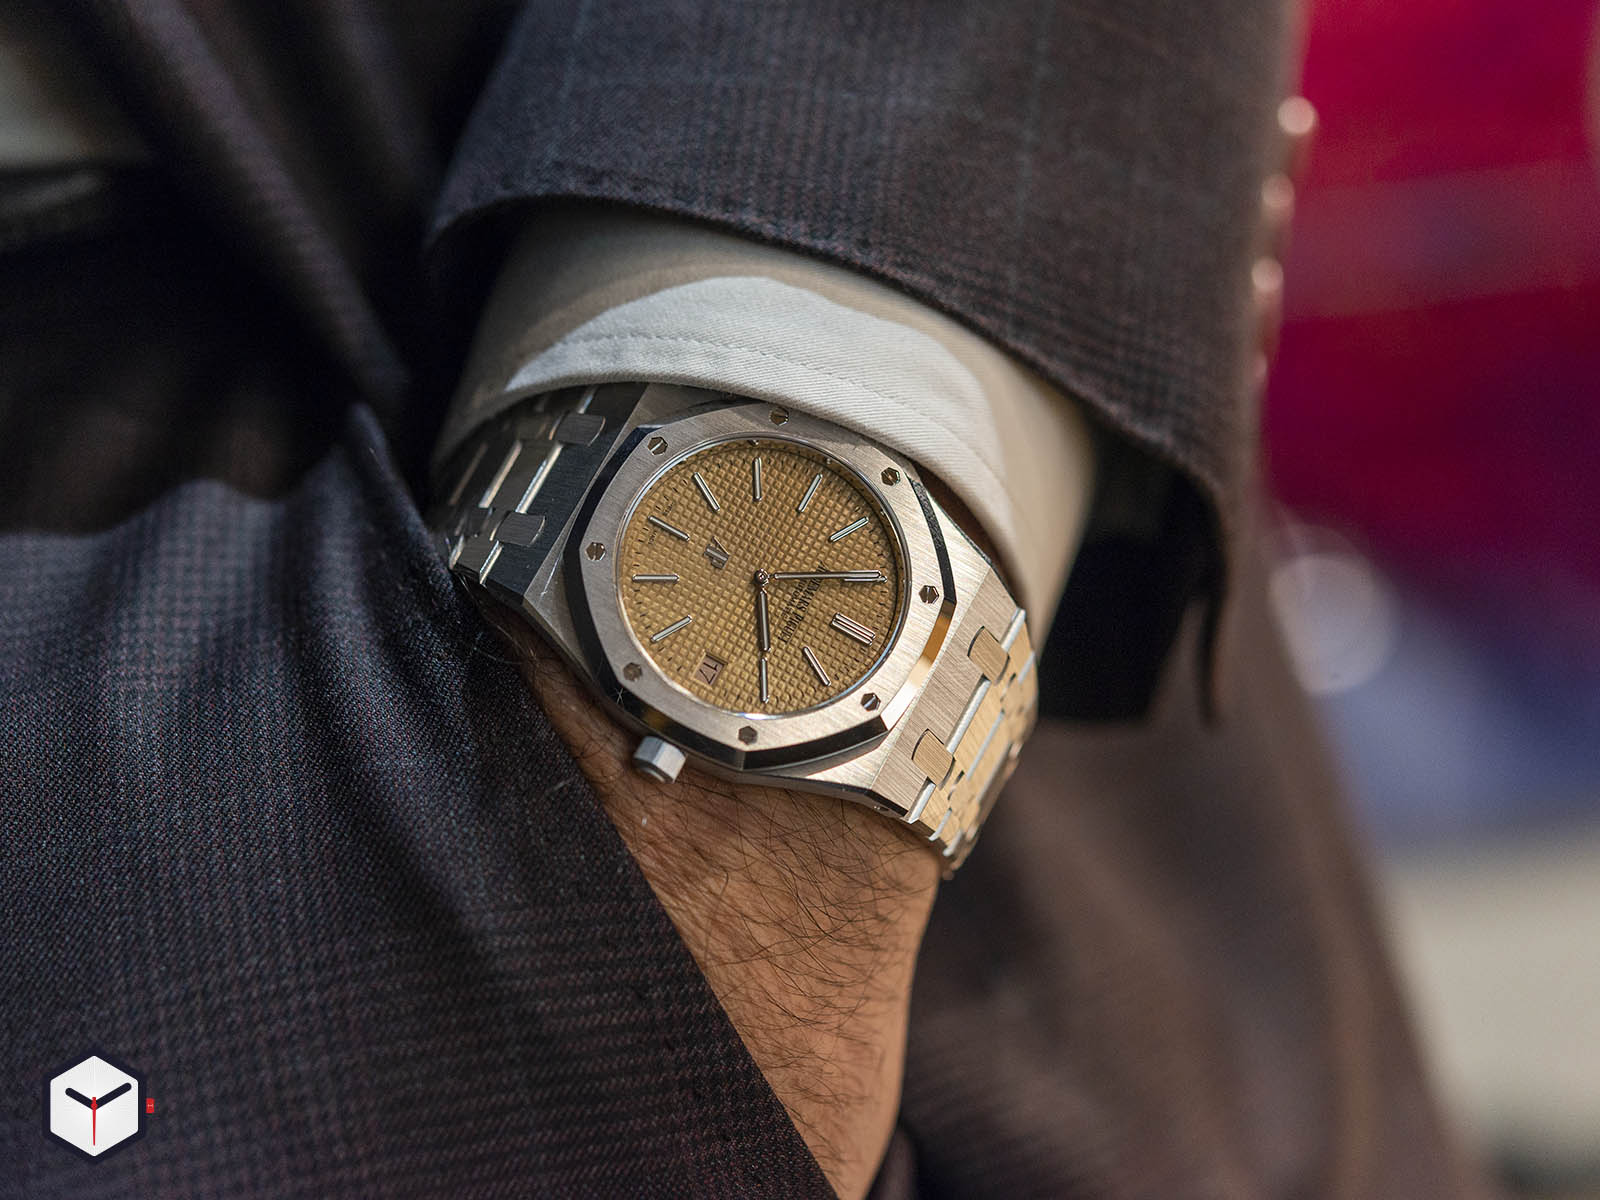 15202bc-oo-1240bc-01-audemars-piguet-royal-oak-jumbo-extra-thin-2019-9.jpg